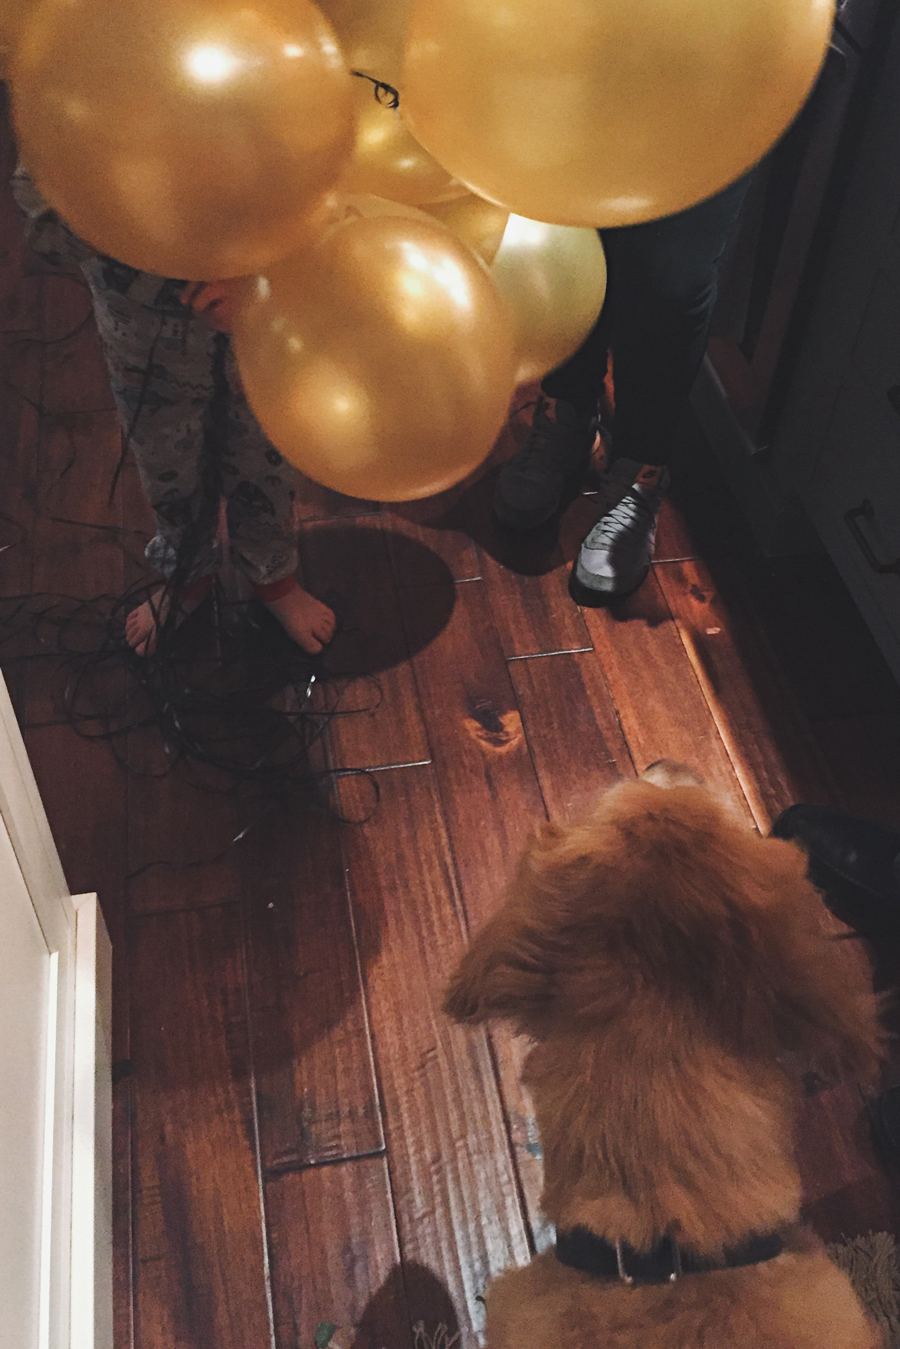 Little boy holding gold balloons for yellow lab.